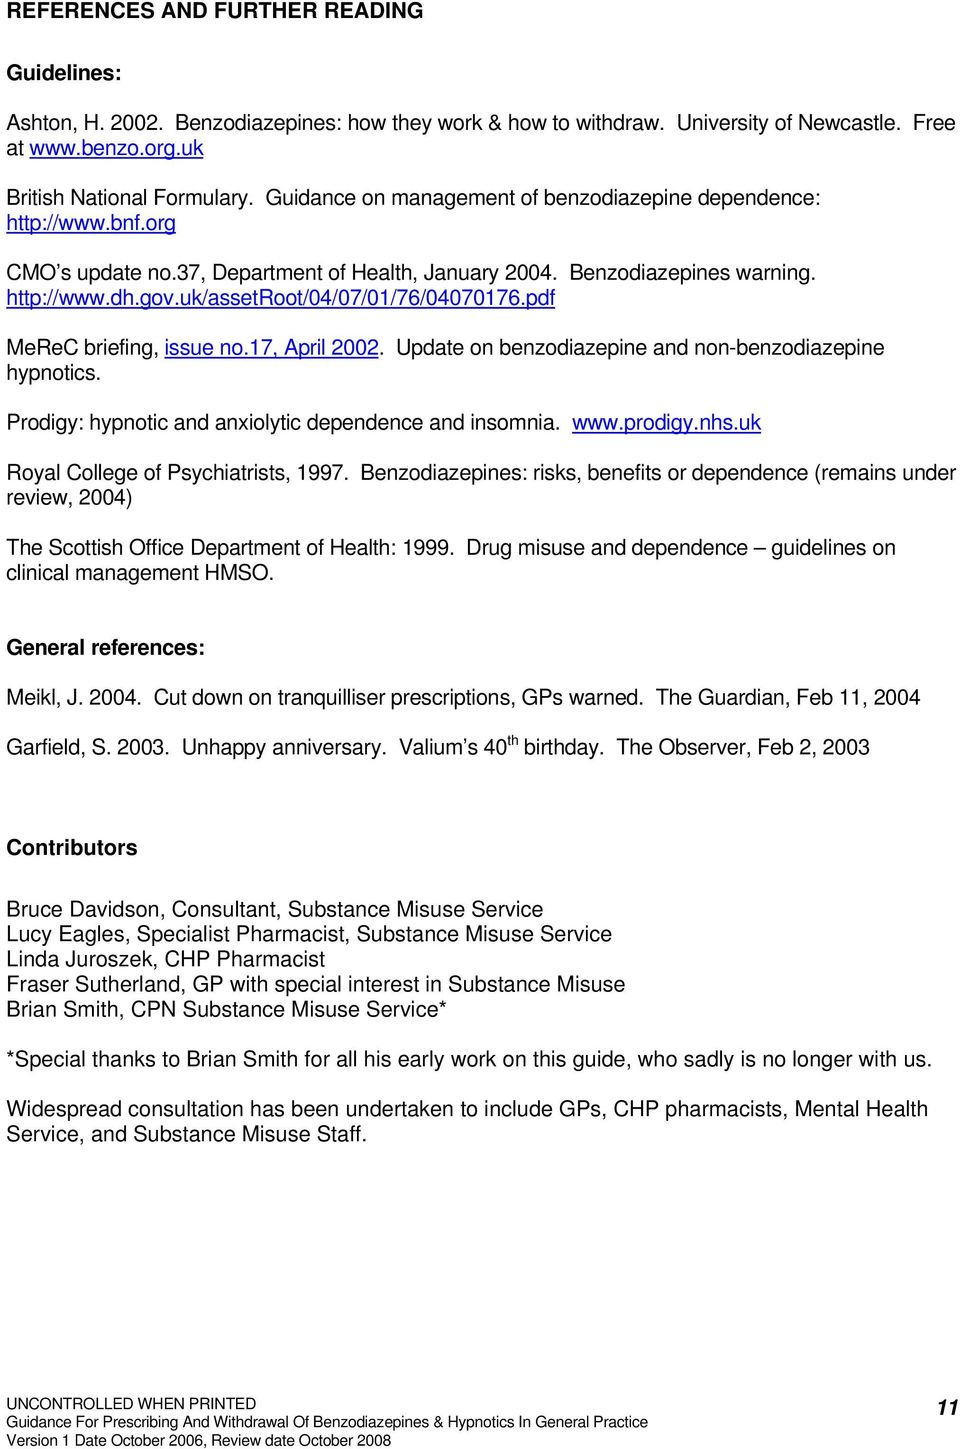 uk/assetroot/04/07/01/76/04070176.pdf MeReC briefing, issue no.17, April 2002. Update on benzodiazepine and non-benzodiazepine hypnotics. Prodigy: hypnotic and anxiolytic dependence and insomnia. www.